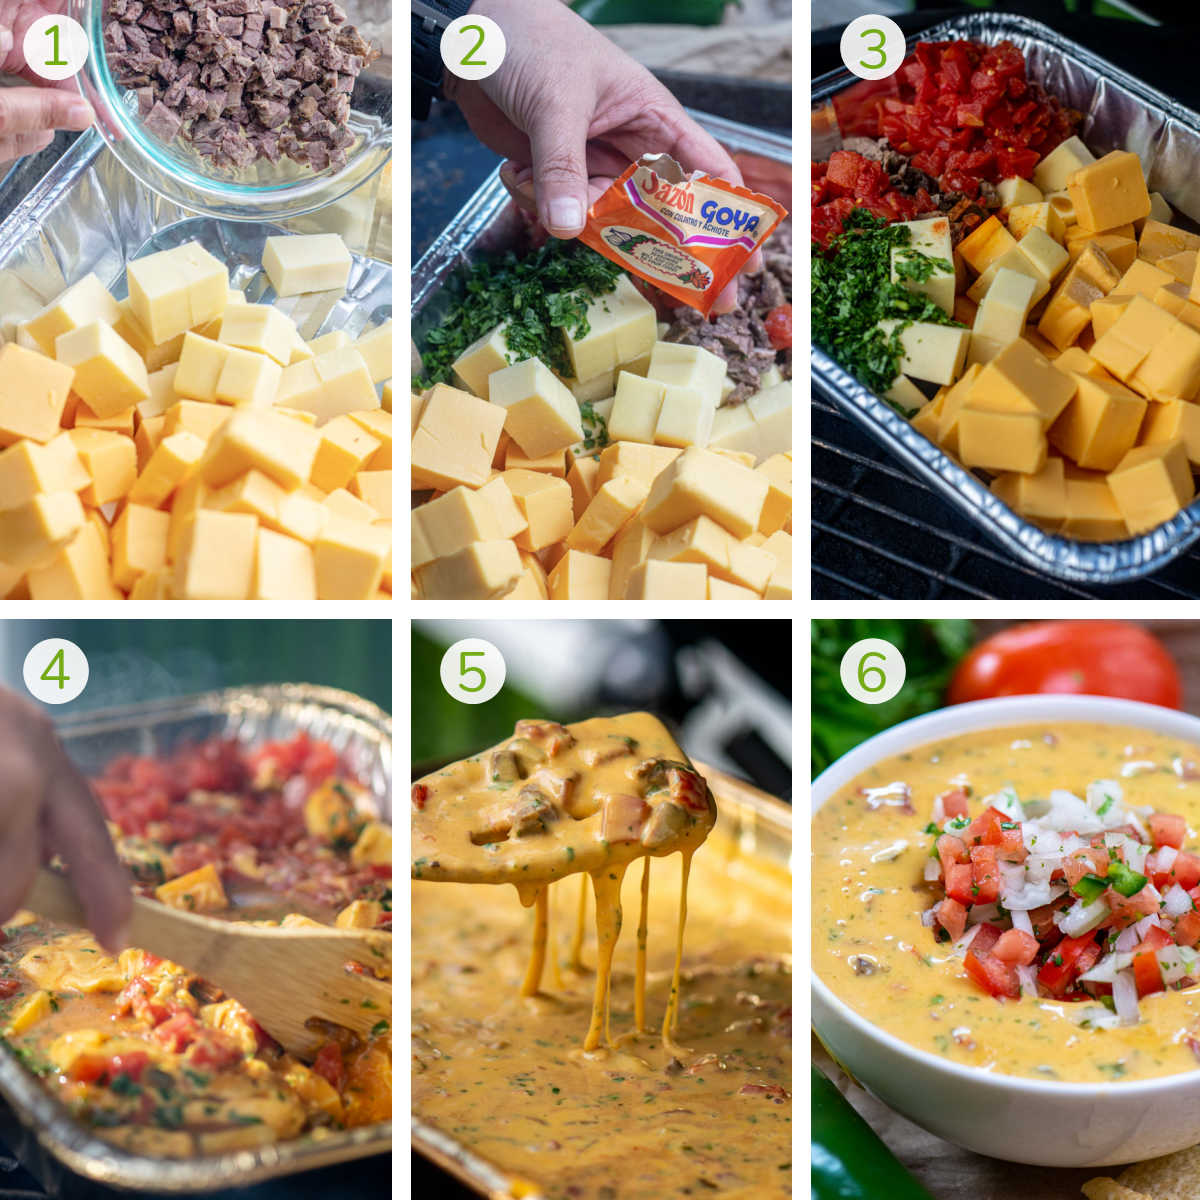 several process photos showing how to add the ingredients to a disposable pan, smoking the queso and serving.